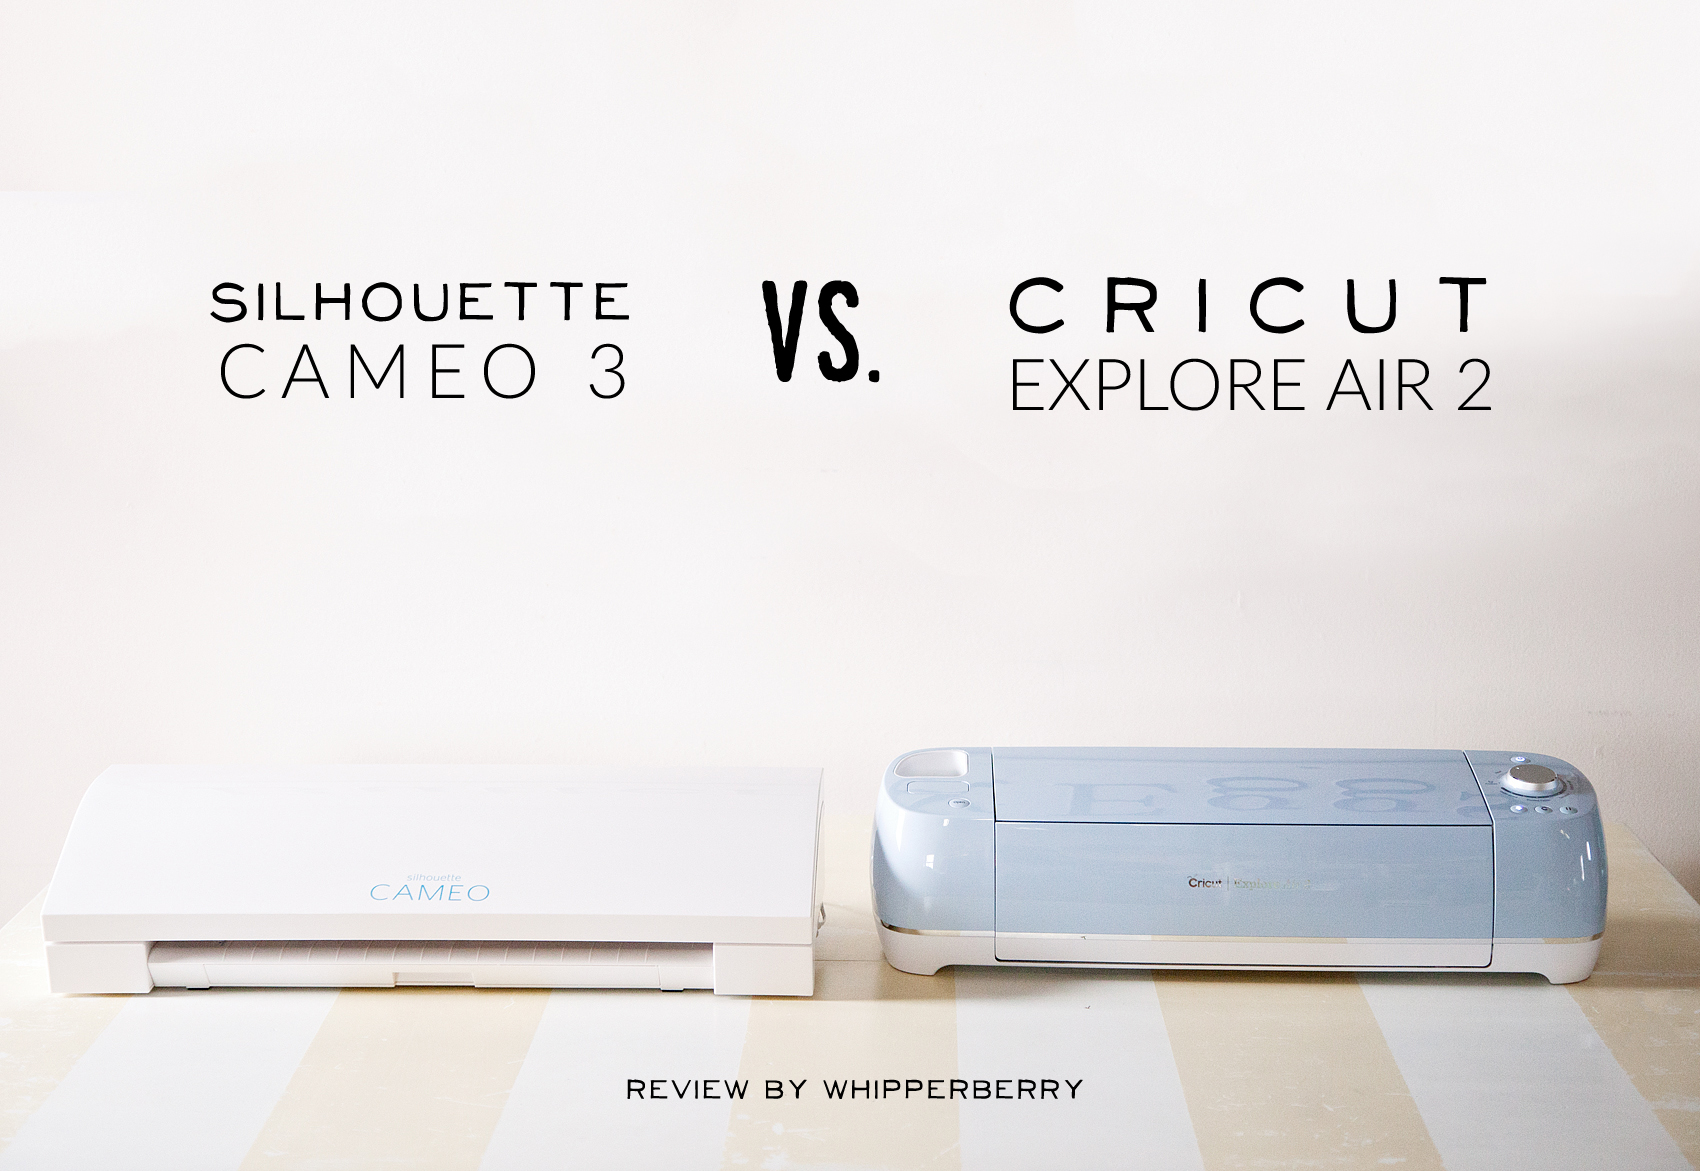 WhipperBerry explores once and for all, Cricut or Silhouette. Which is the best cutting machine on the market.